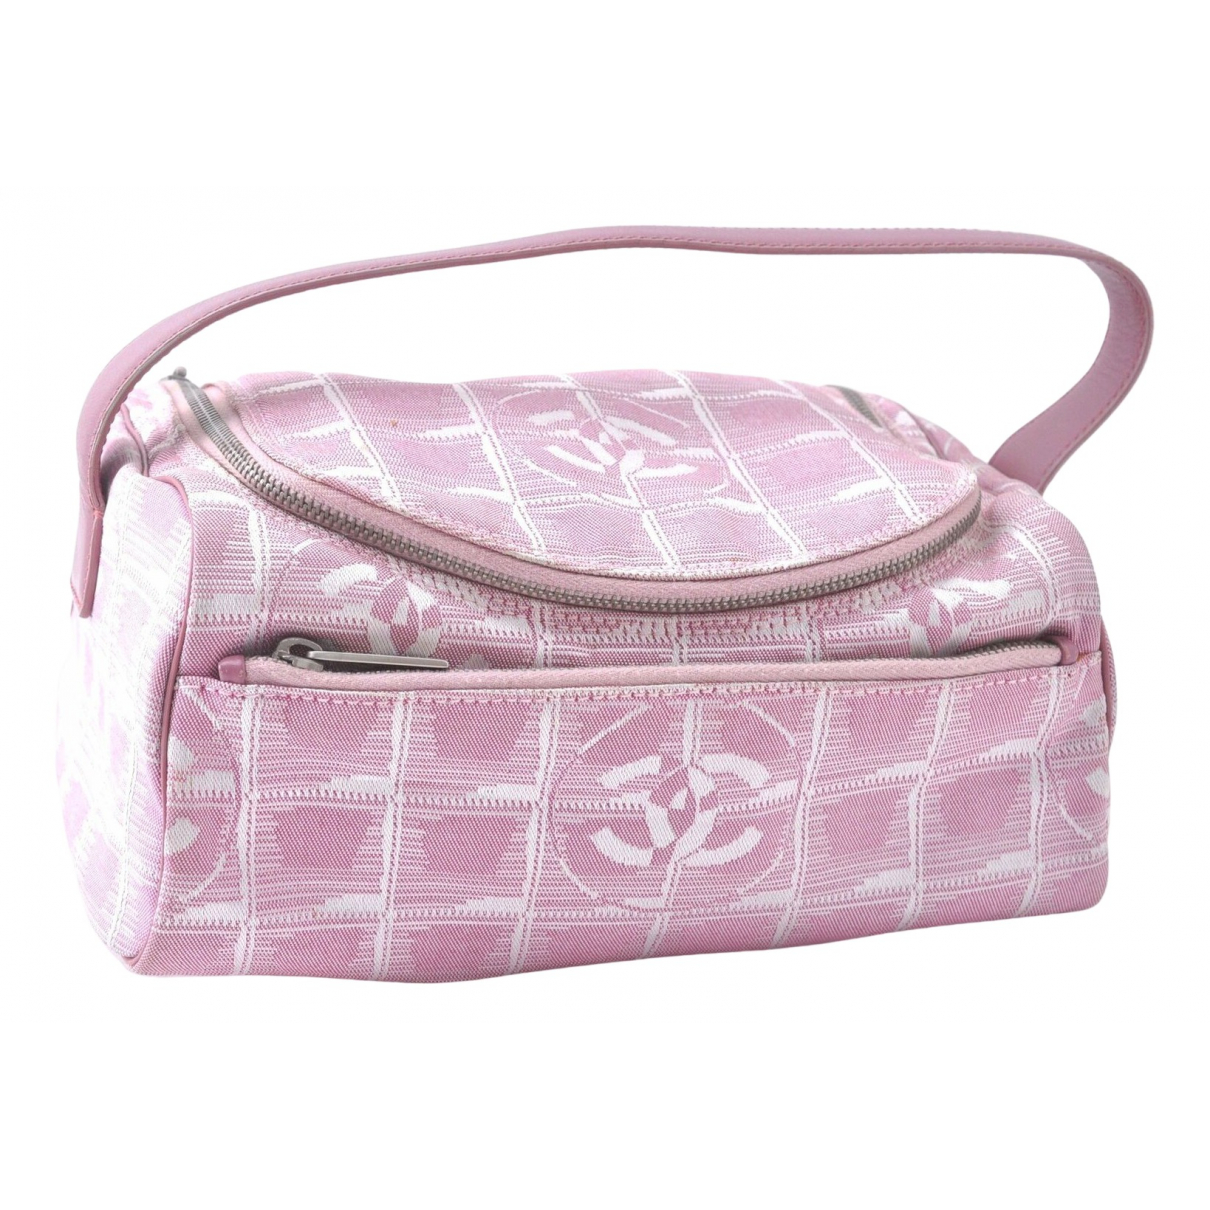 Chanel N Pink Cloth Purses, wallet & cases for Women N